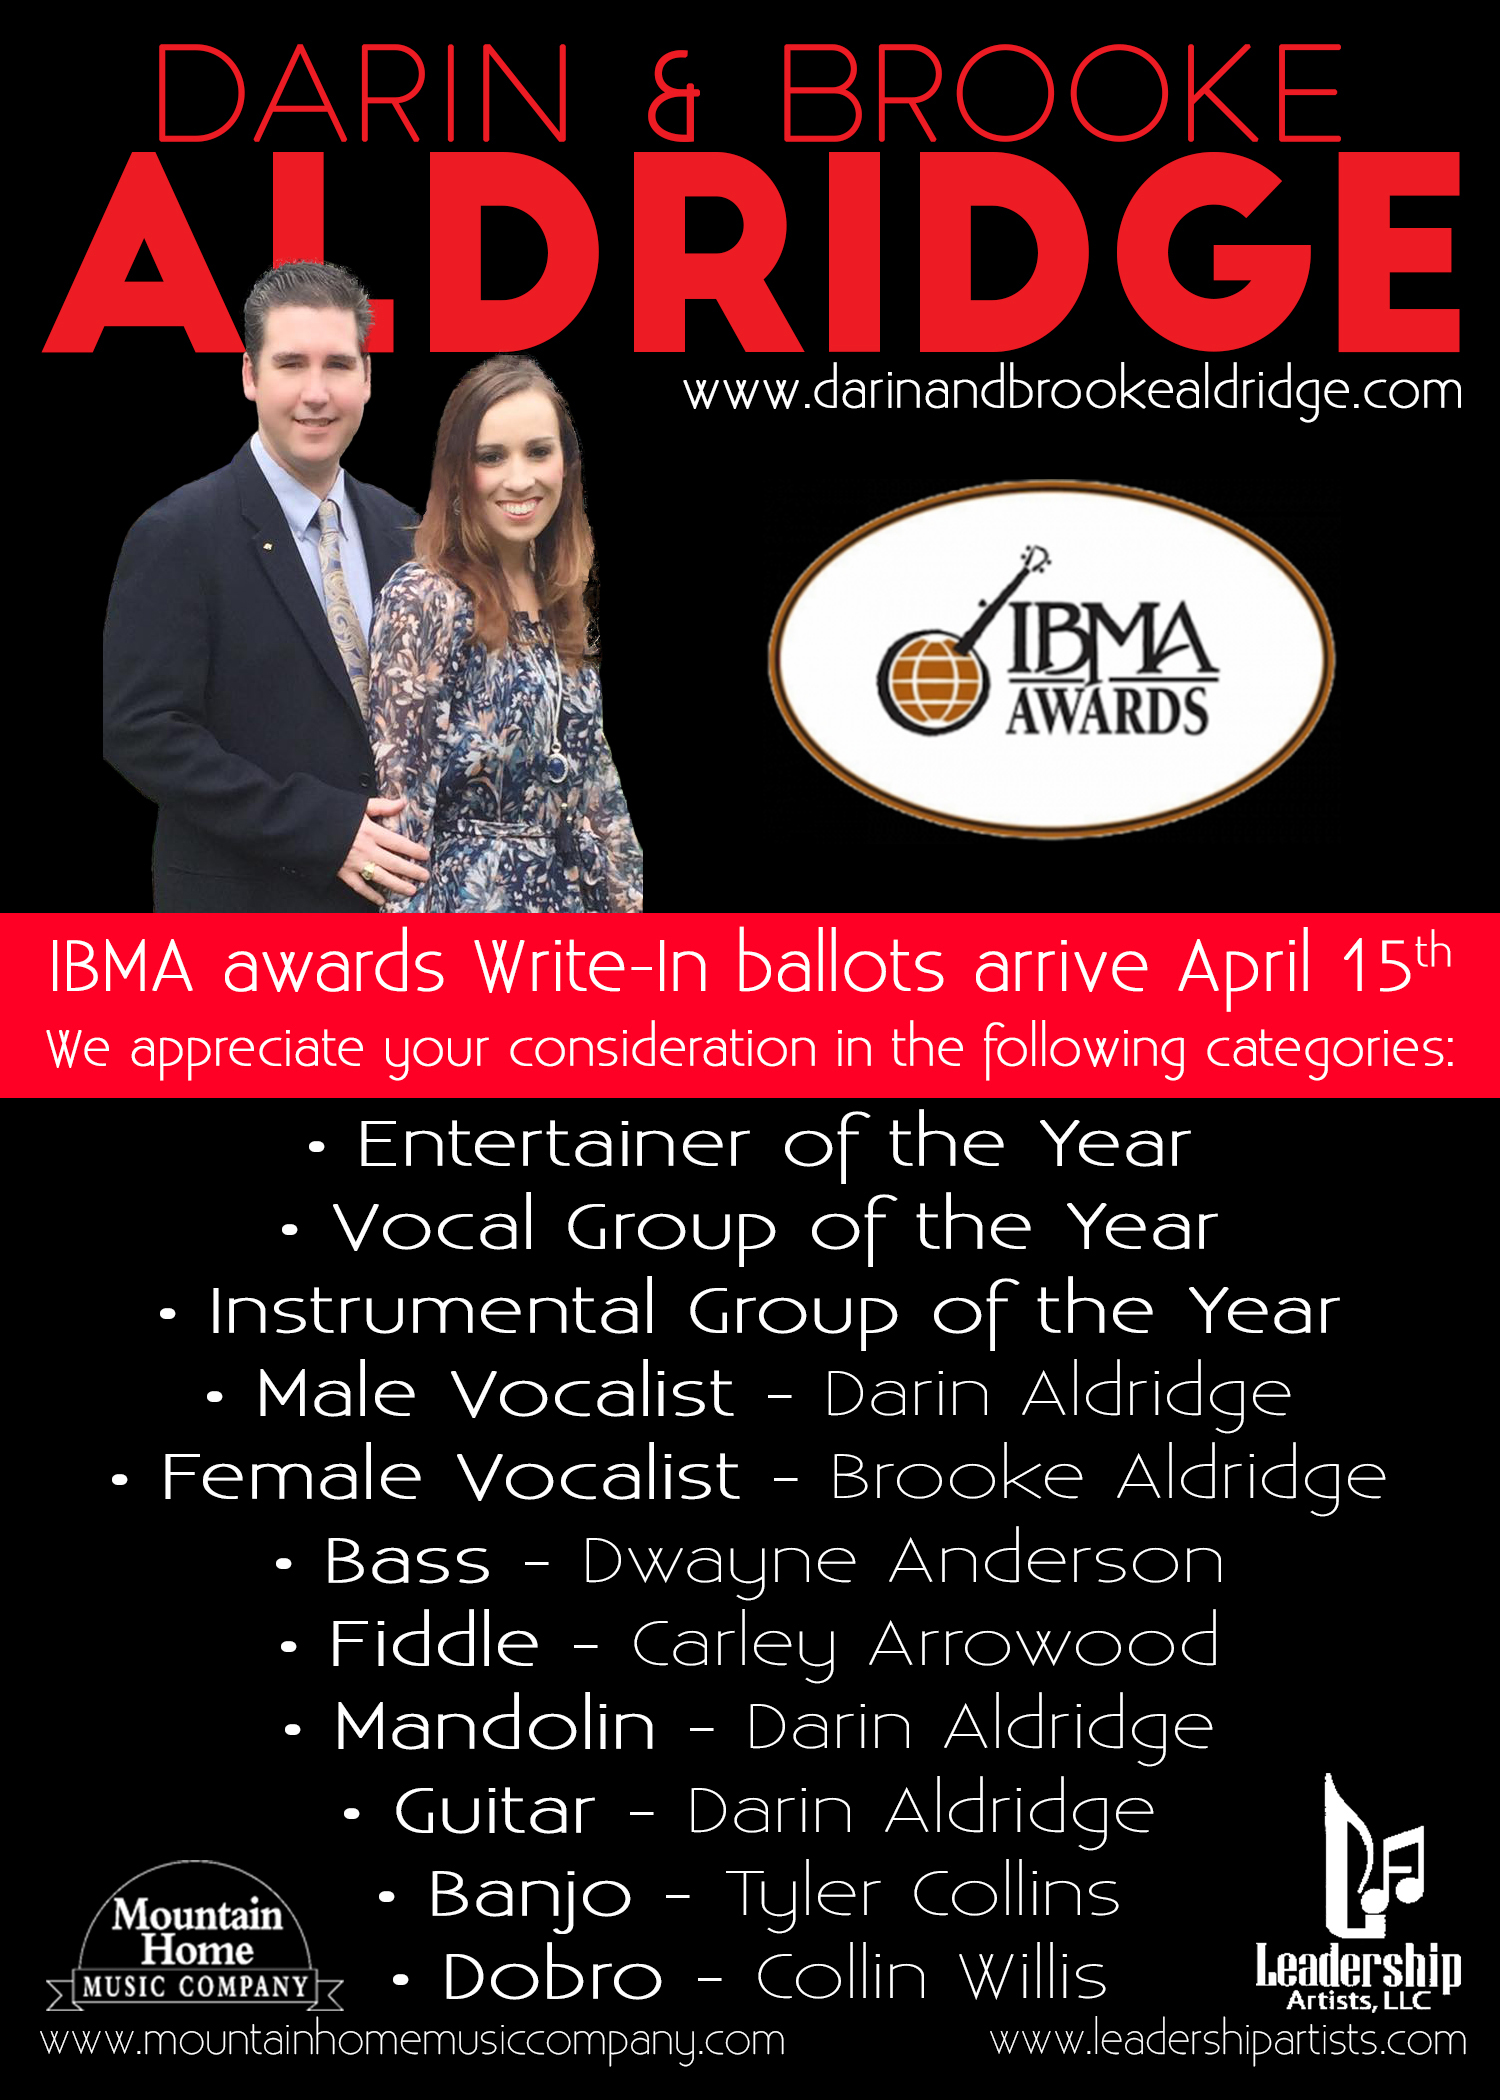 IBMA Awards Write-In Ballots Arrive April 15th & We Appreciate Your Consideration!